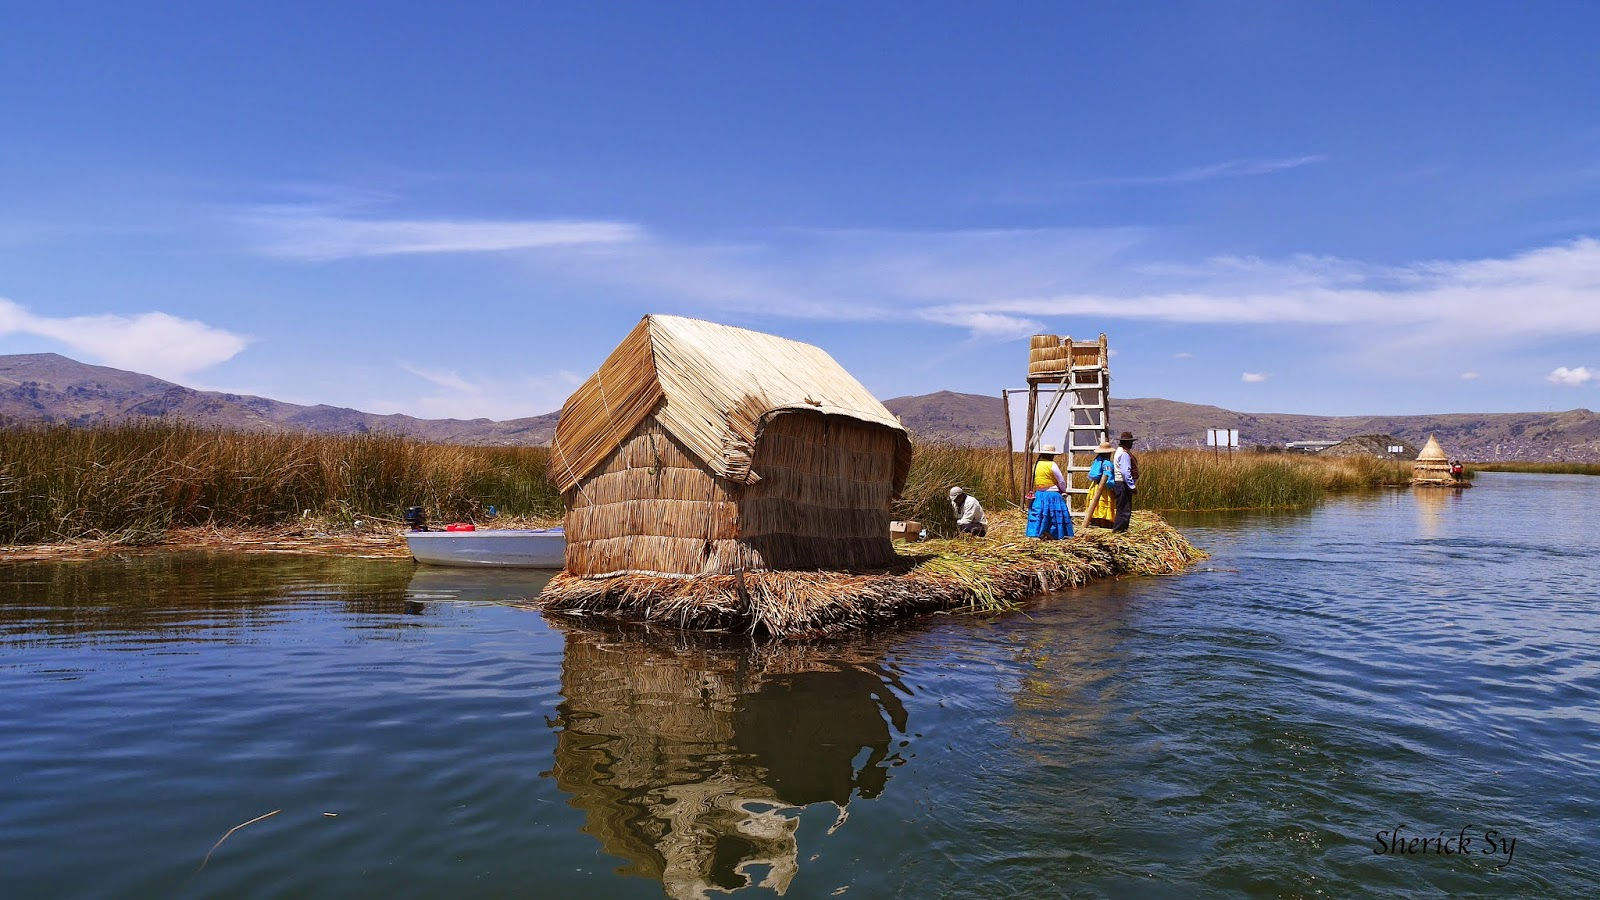 Entrance to the Floating Islands of Uros, Peru